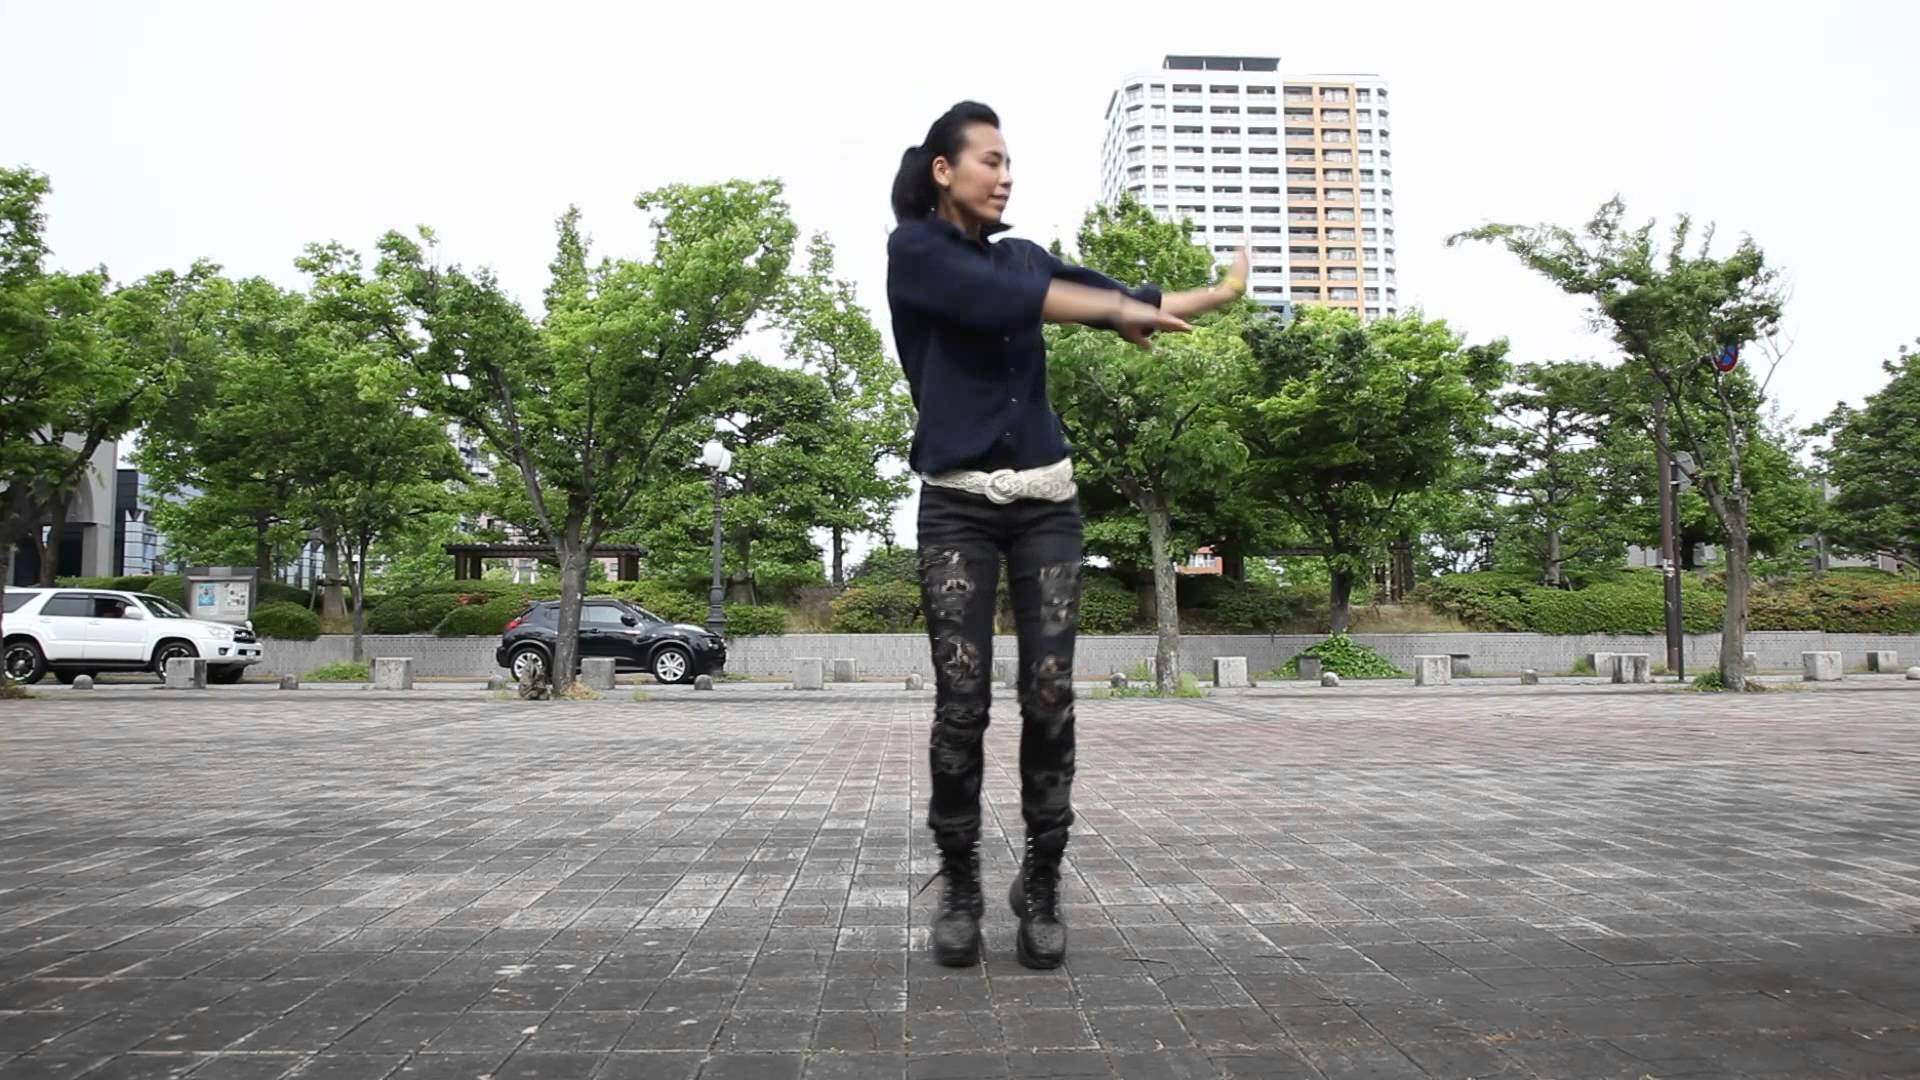 ICYMI: Check Out This Awesome 'Boom Boom Jellyfish' Dance Video